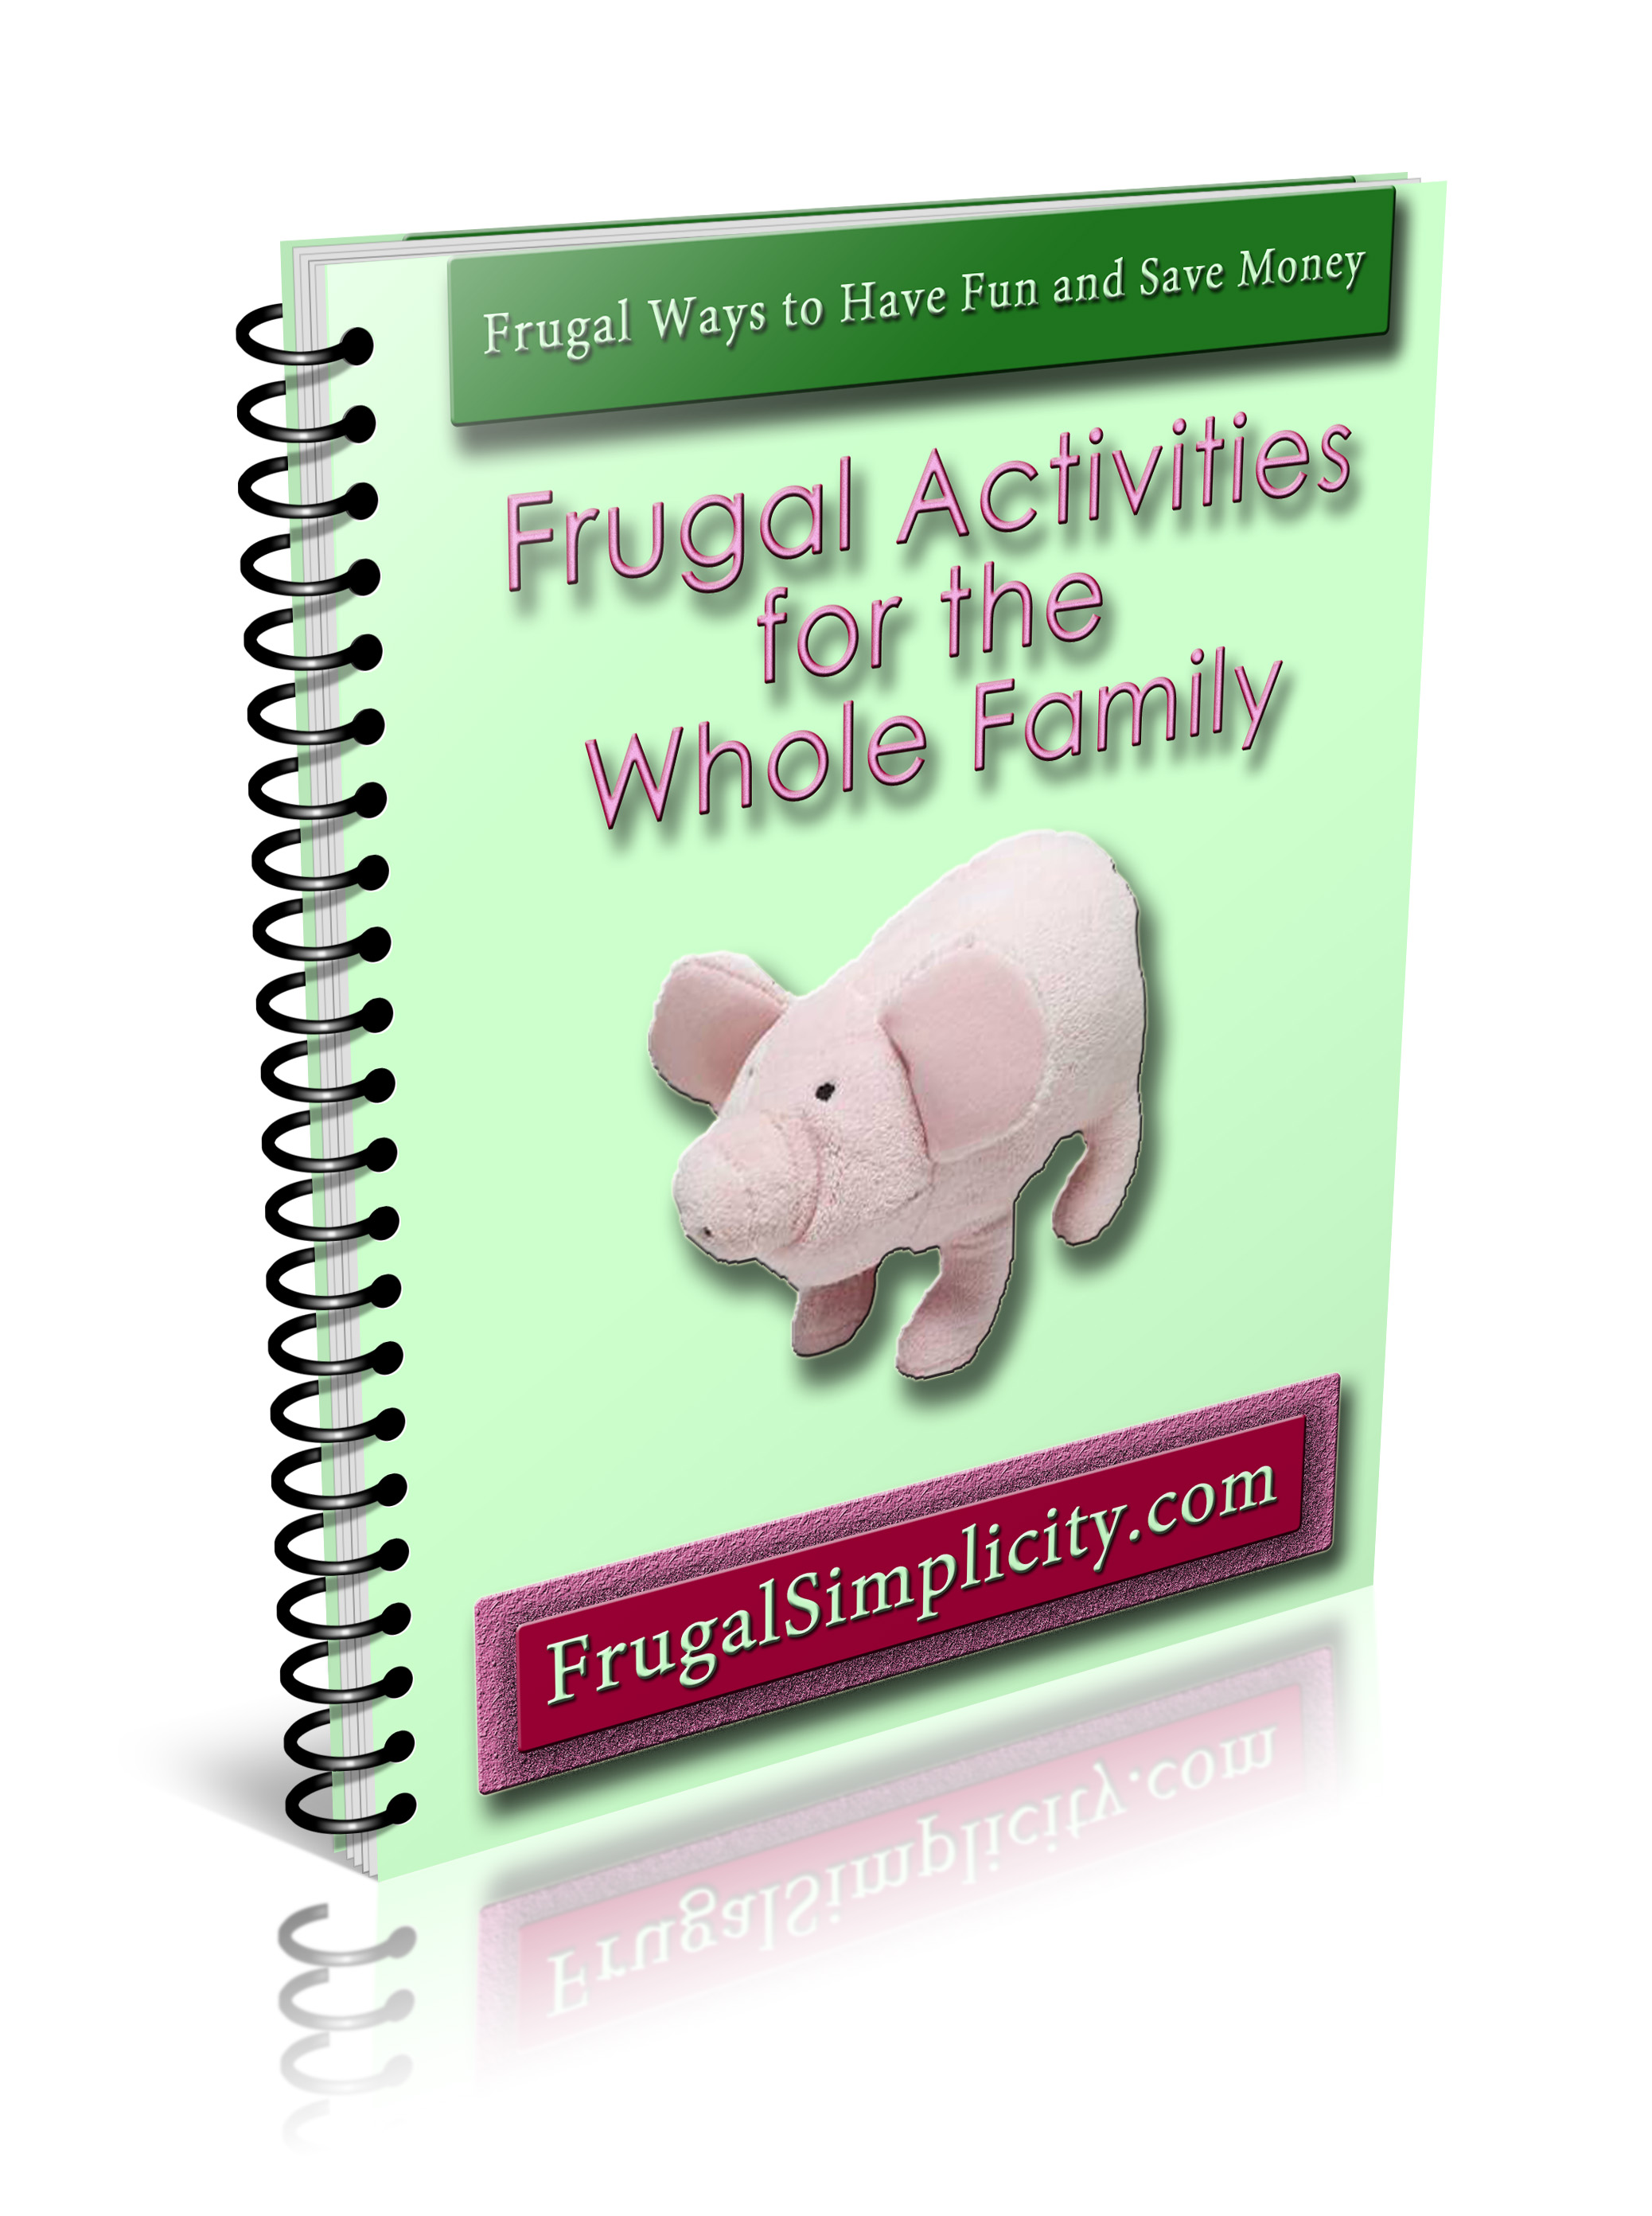 Frugal Activities for the Whole Family